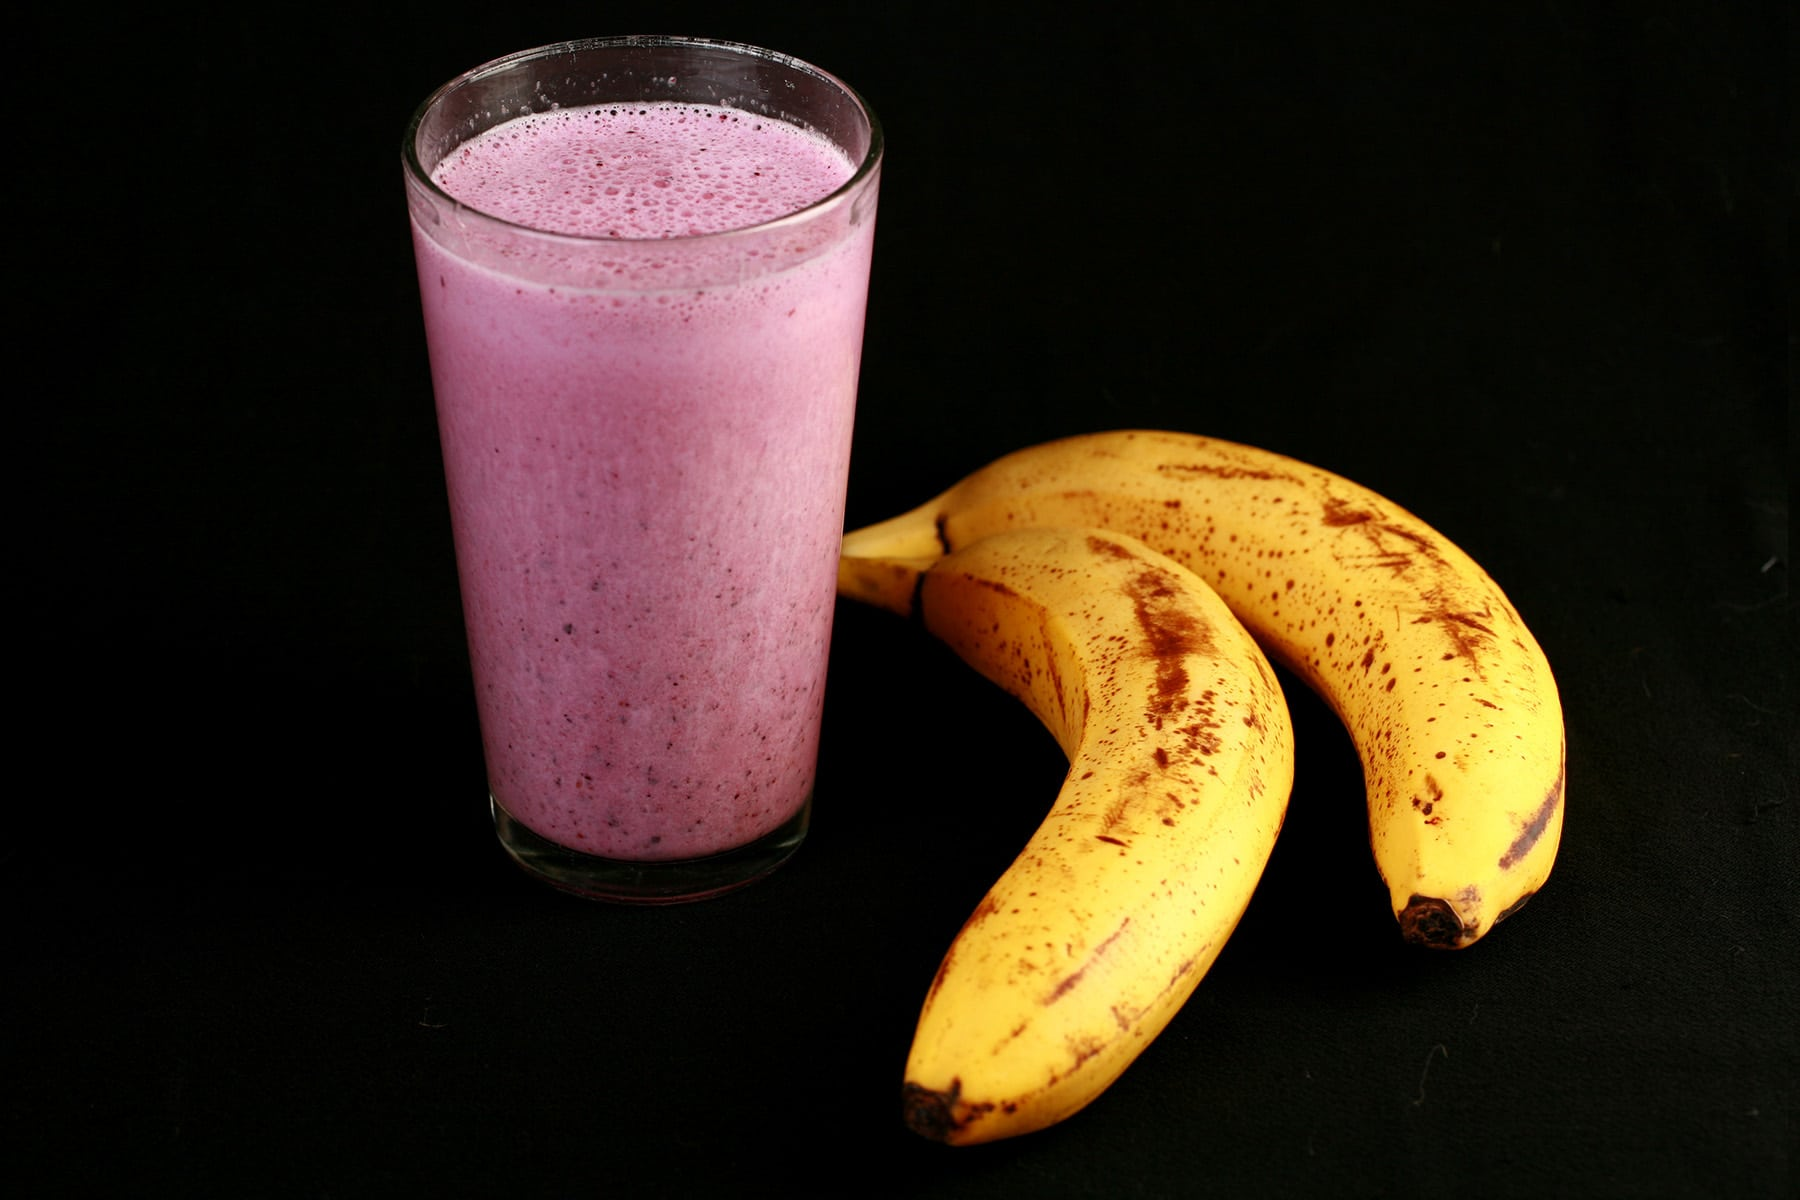 A pink convention smoothie in a tall glass, next to 2 bananas.